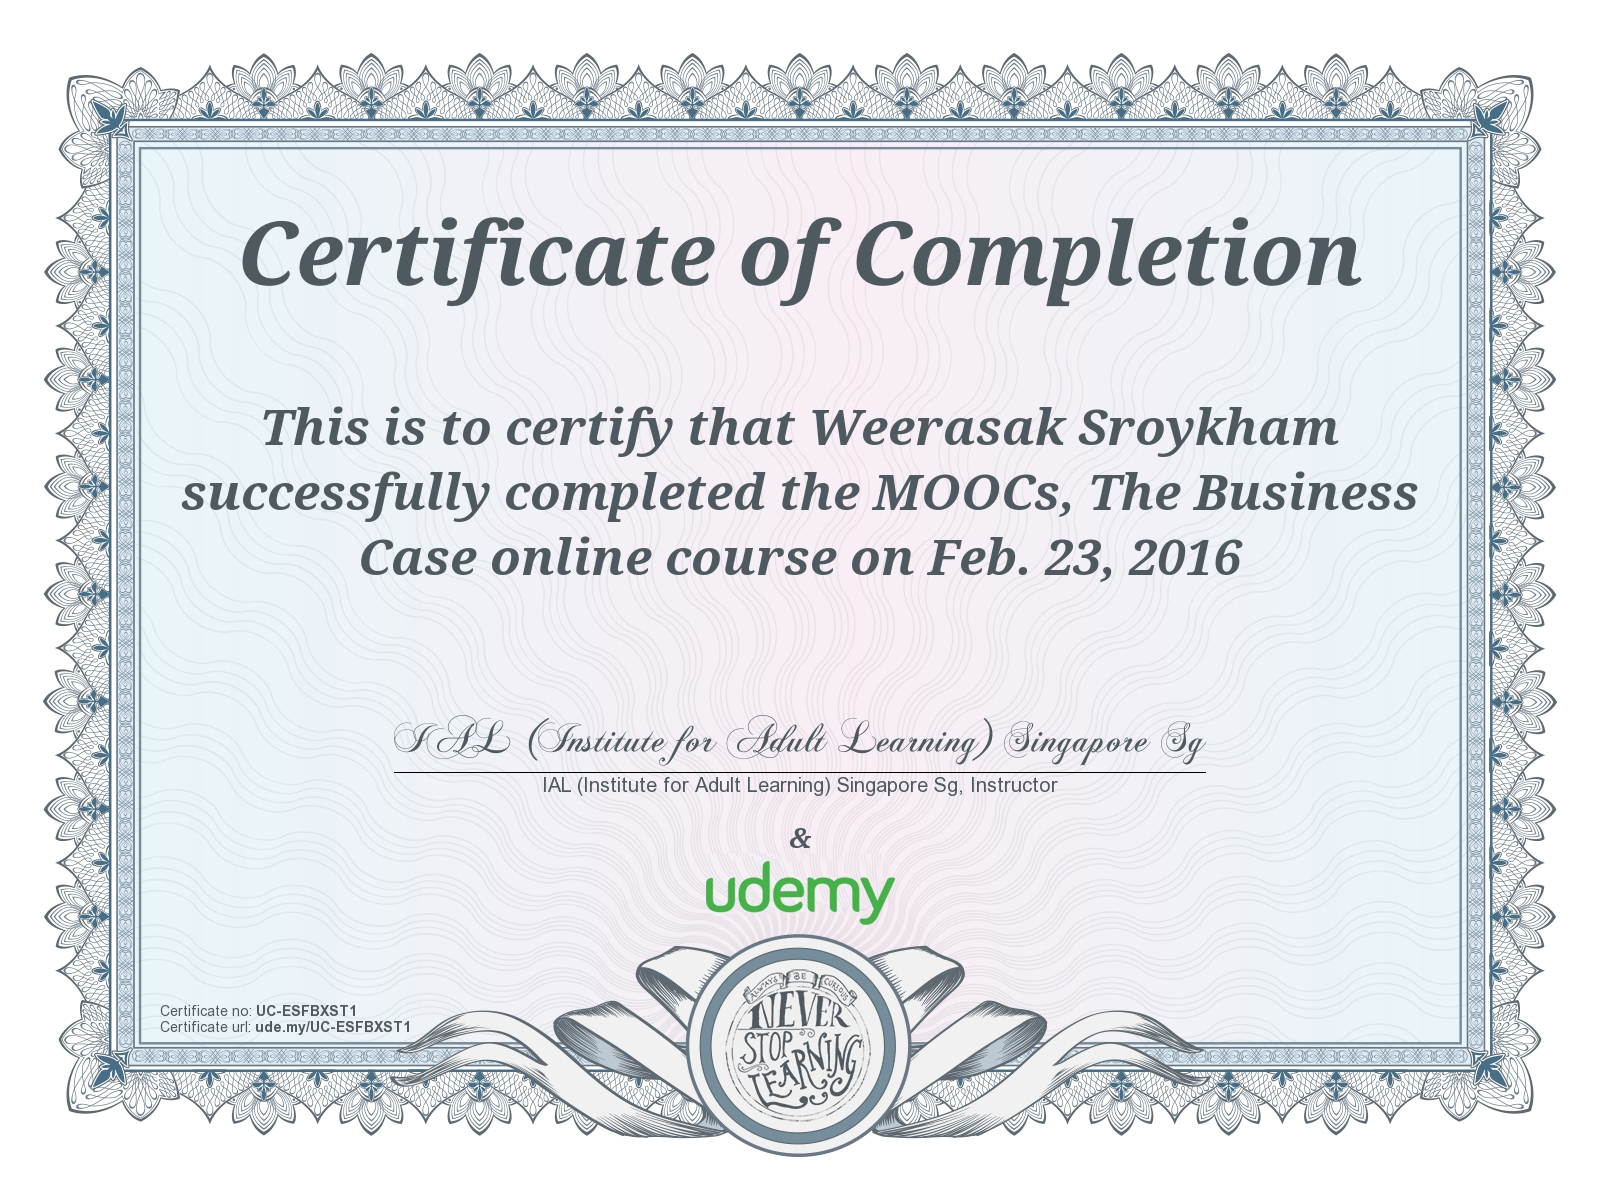 Moocs The Business Case Onlinecourse Certificate Of